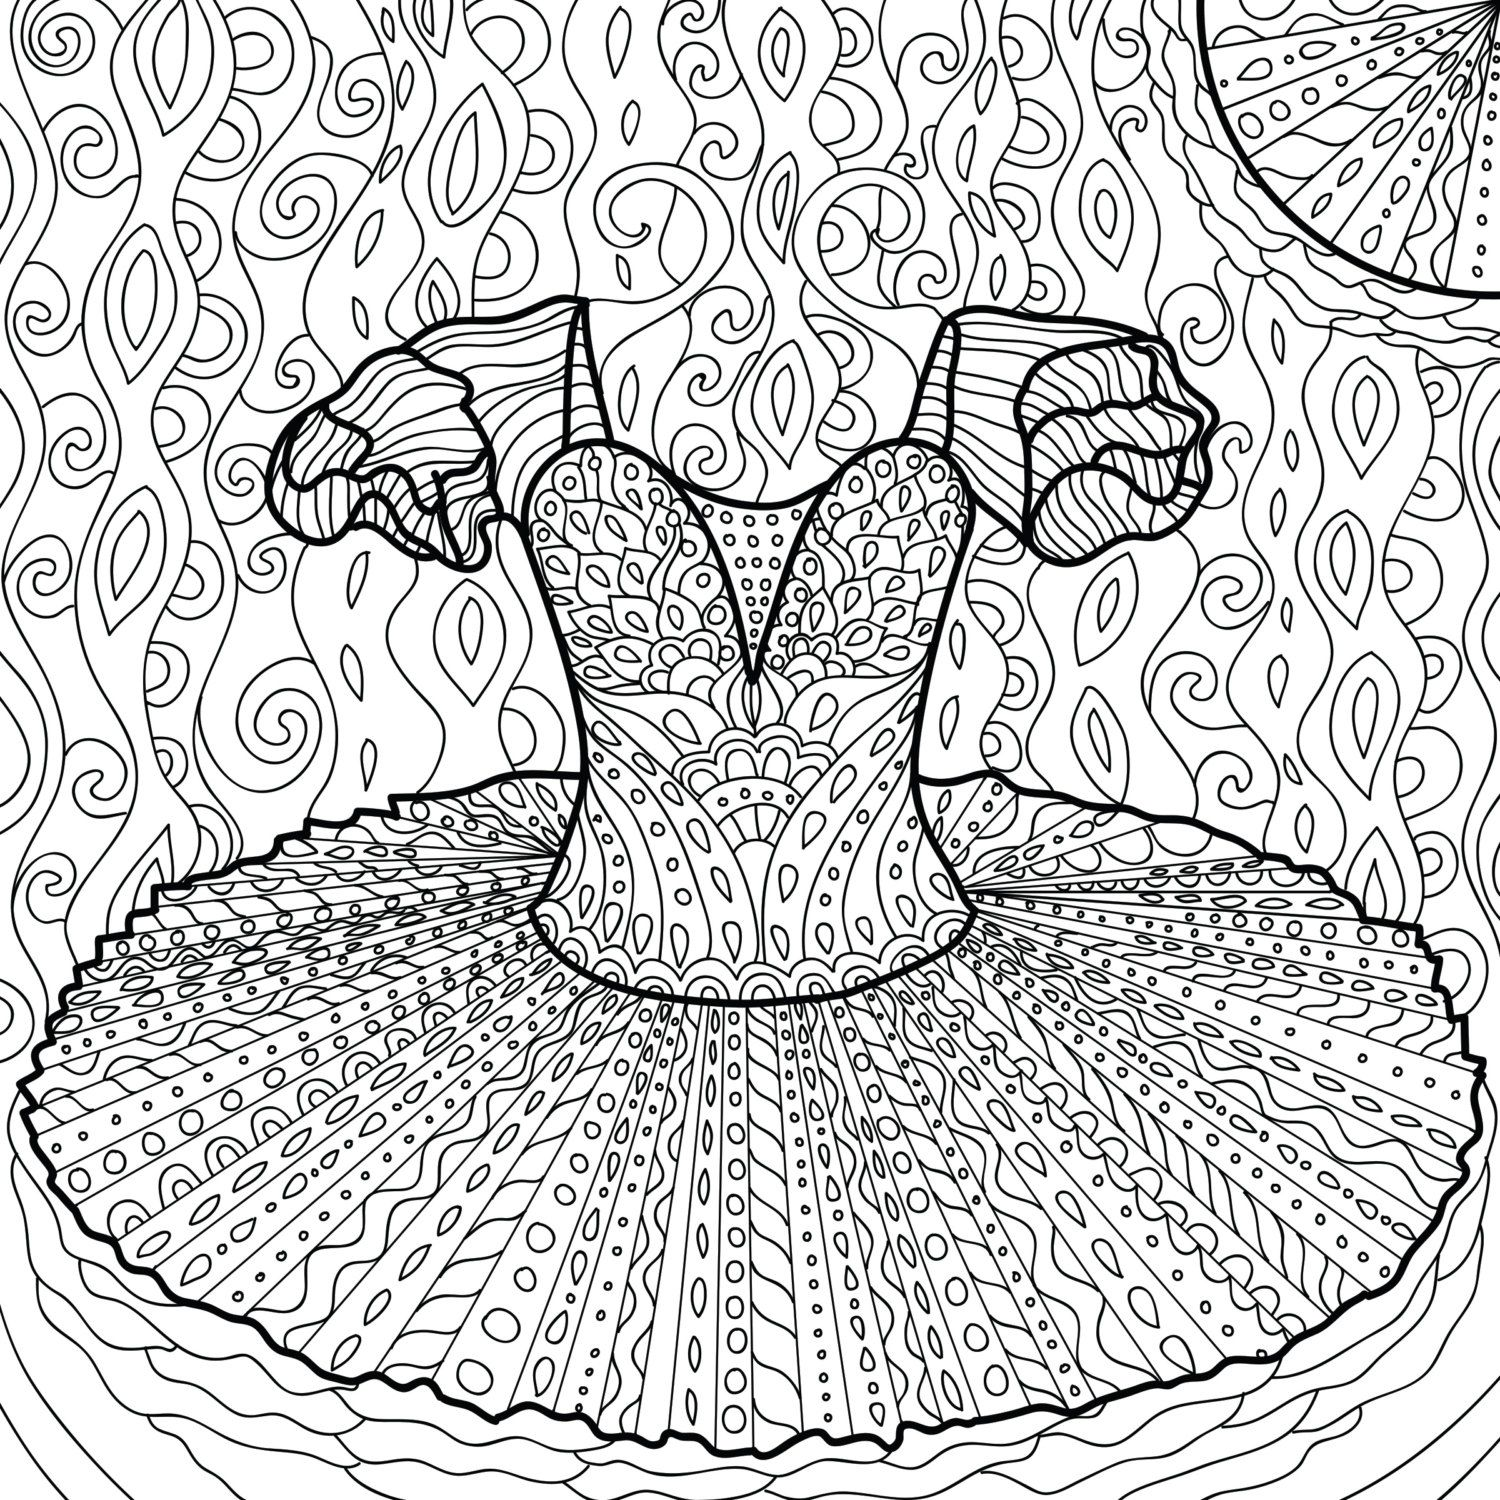 Printable Coloring Page Zentangle Dance Coloring Book Etsy Dance Coloring Pages Coloring Books Printable Coloring Pages